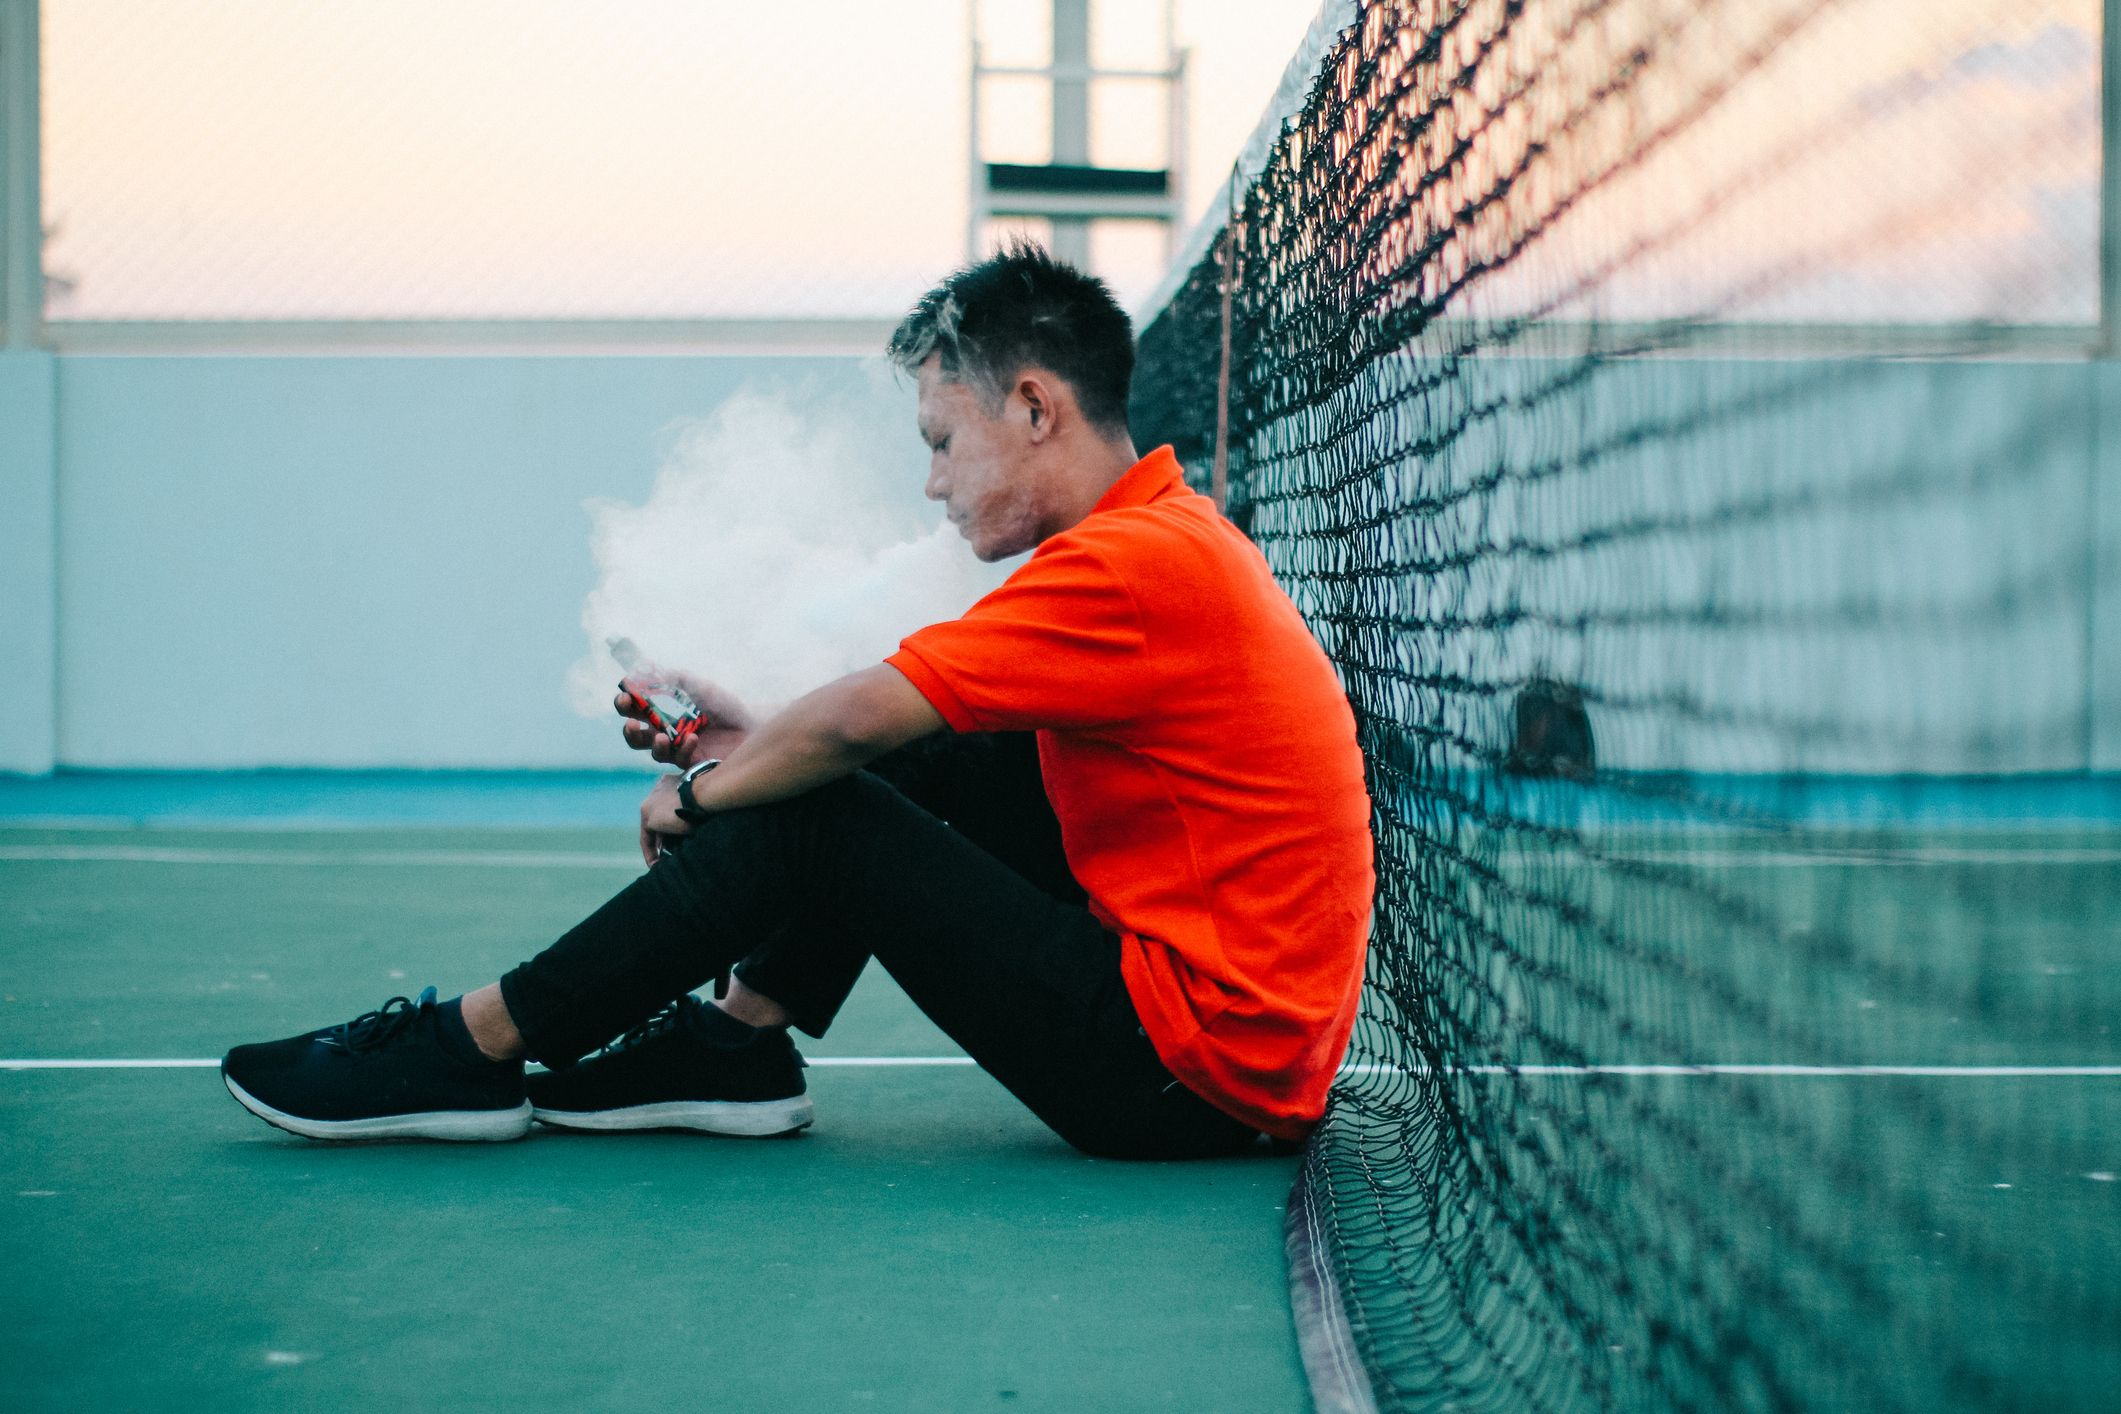 America's Flavored Vape Ban Just Started. Here's What Will Change—and What Won't.